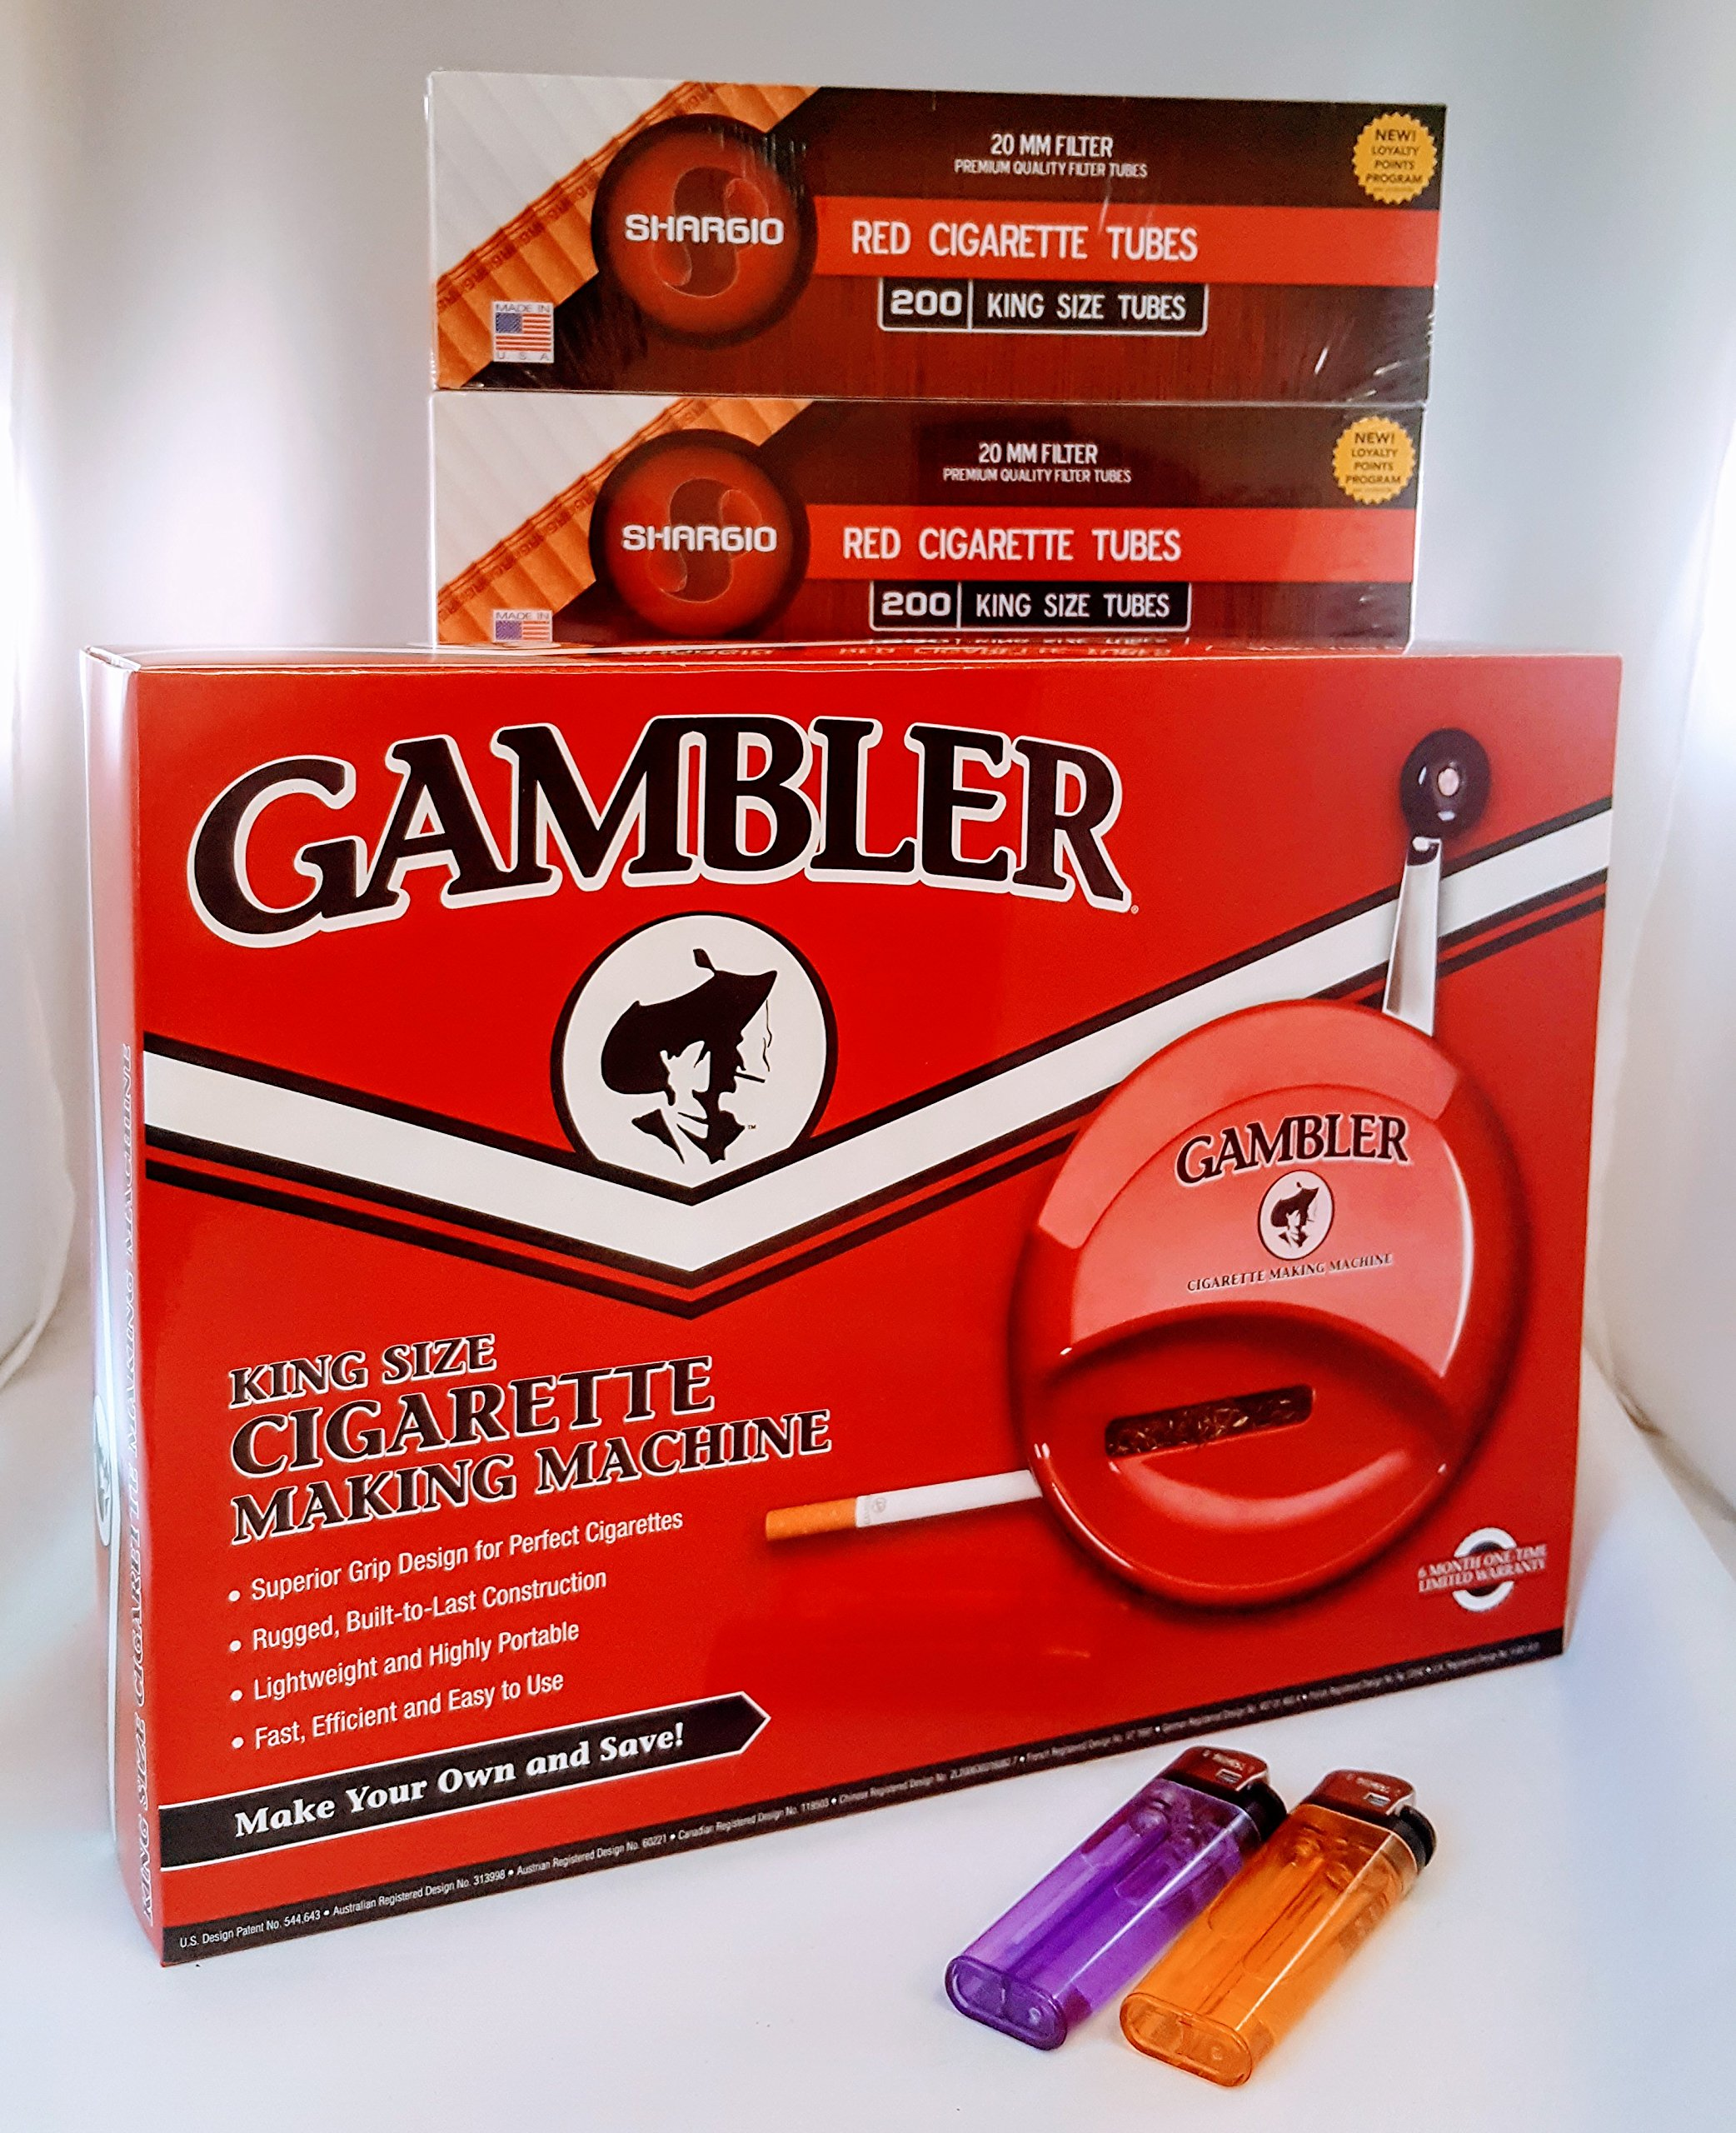 Gambler Kingsize and 100's Cigarette Machine+ FREE Shargio tubes & liighters by TOP